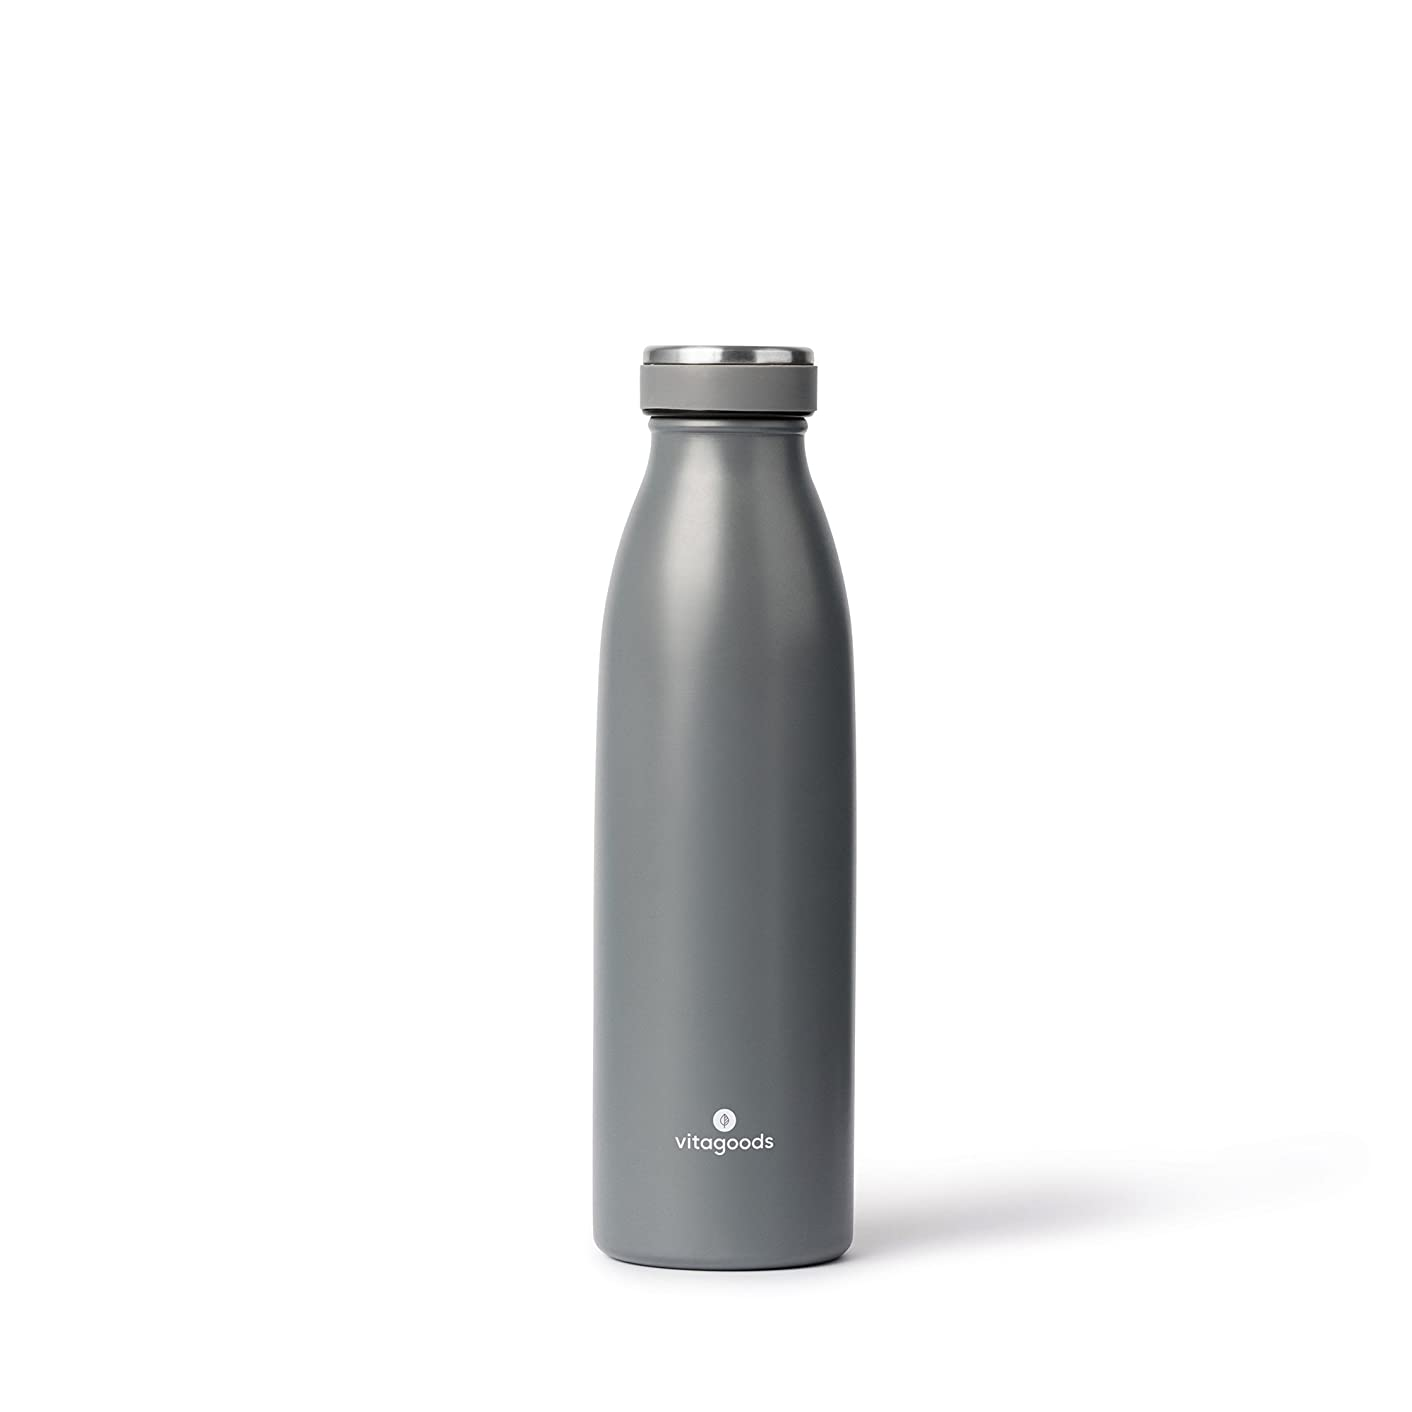 Vitagoods Spout Stainless Steel Water Bottle - Vacuum Sealed, Double Walled Insulation - 500ml, Charcoal